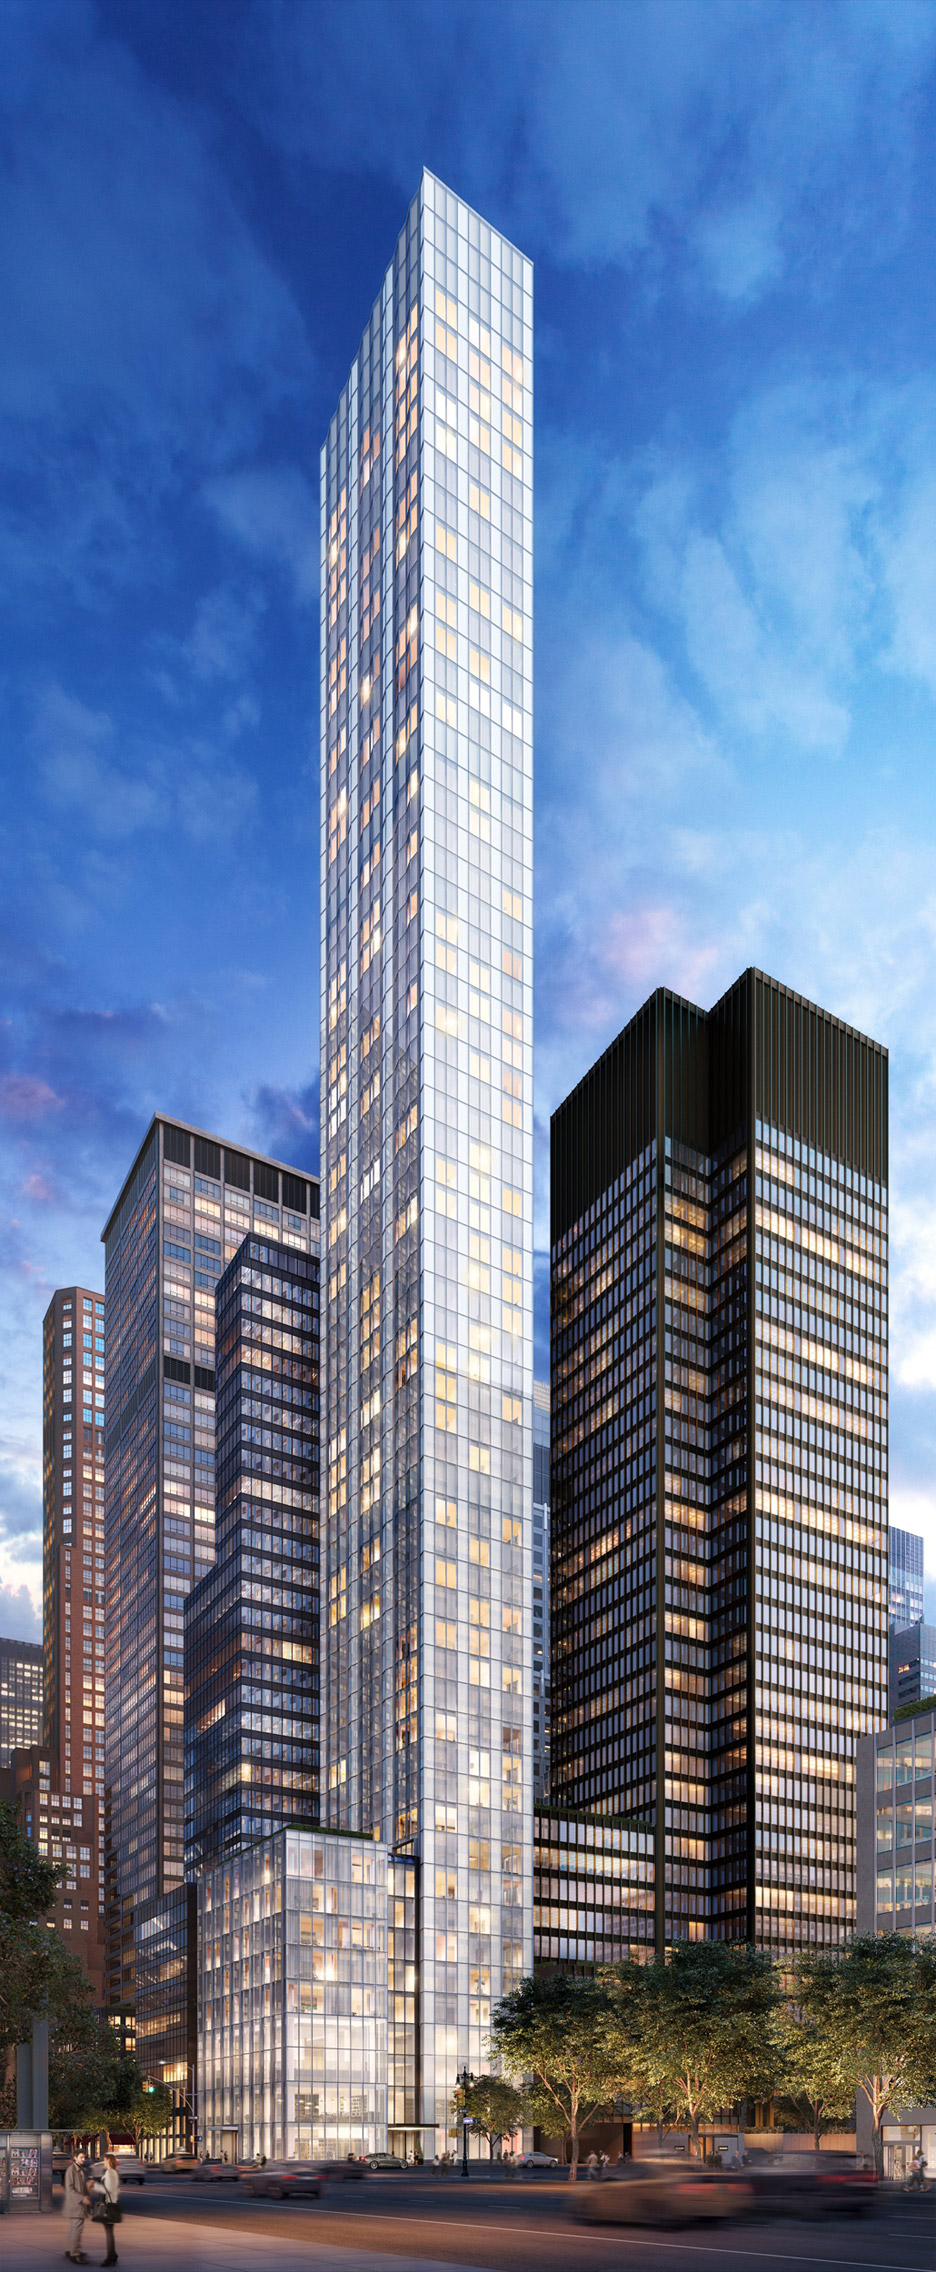 New Images Released Of Fosters Skinny New York Skyscraper